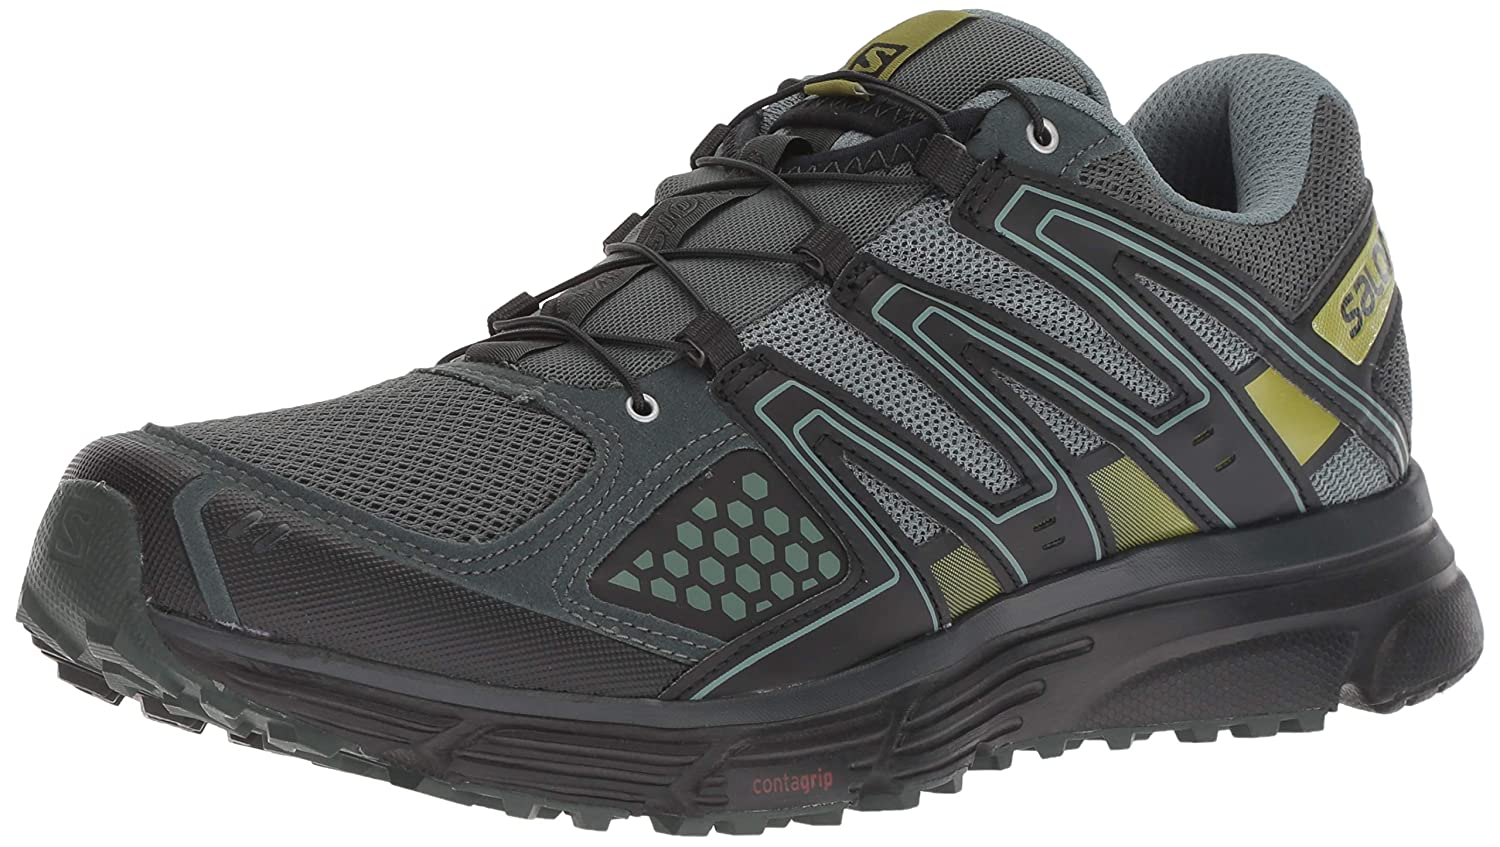 Salomon X-Mission 3, Zapatillas de Trail Running para Hombre, Verde (Urban Chic/Black/Guacamole), 42 EU